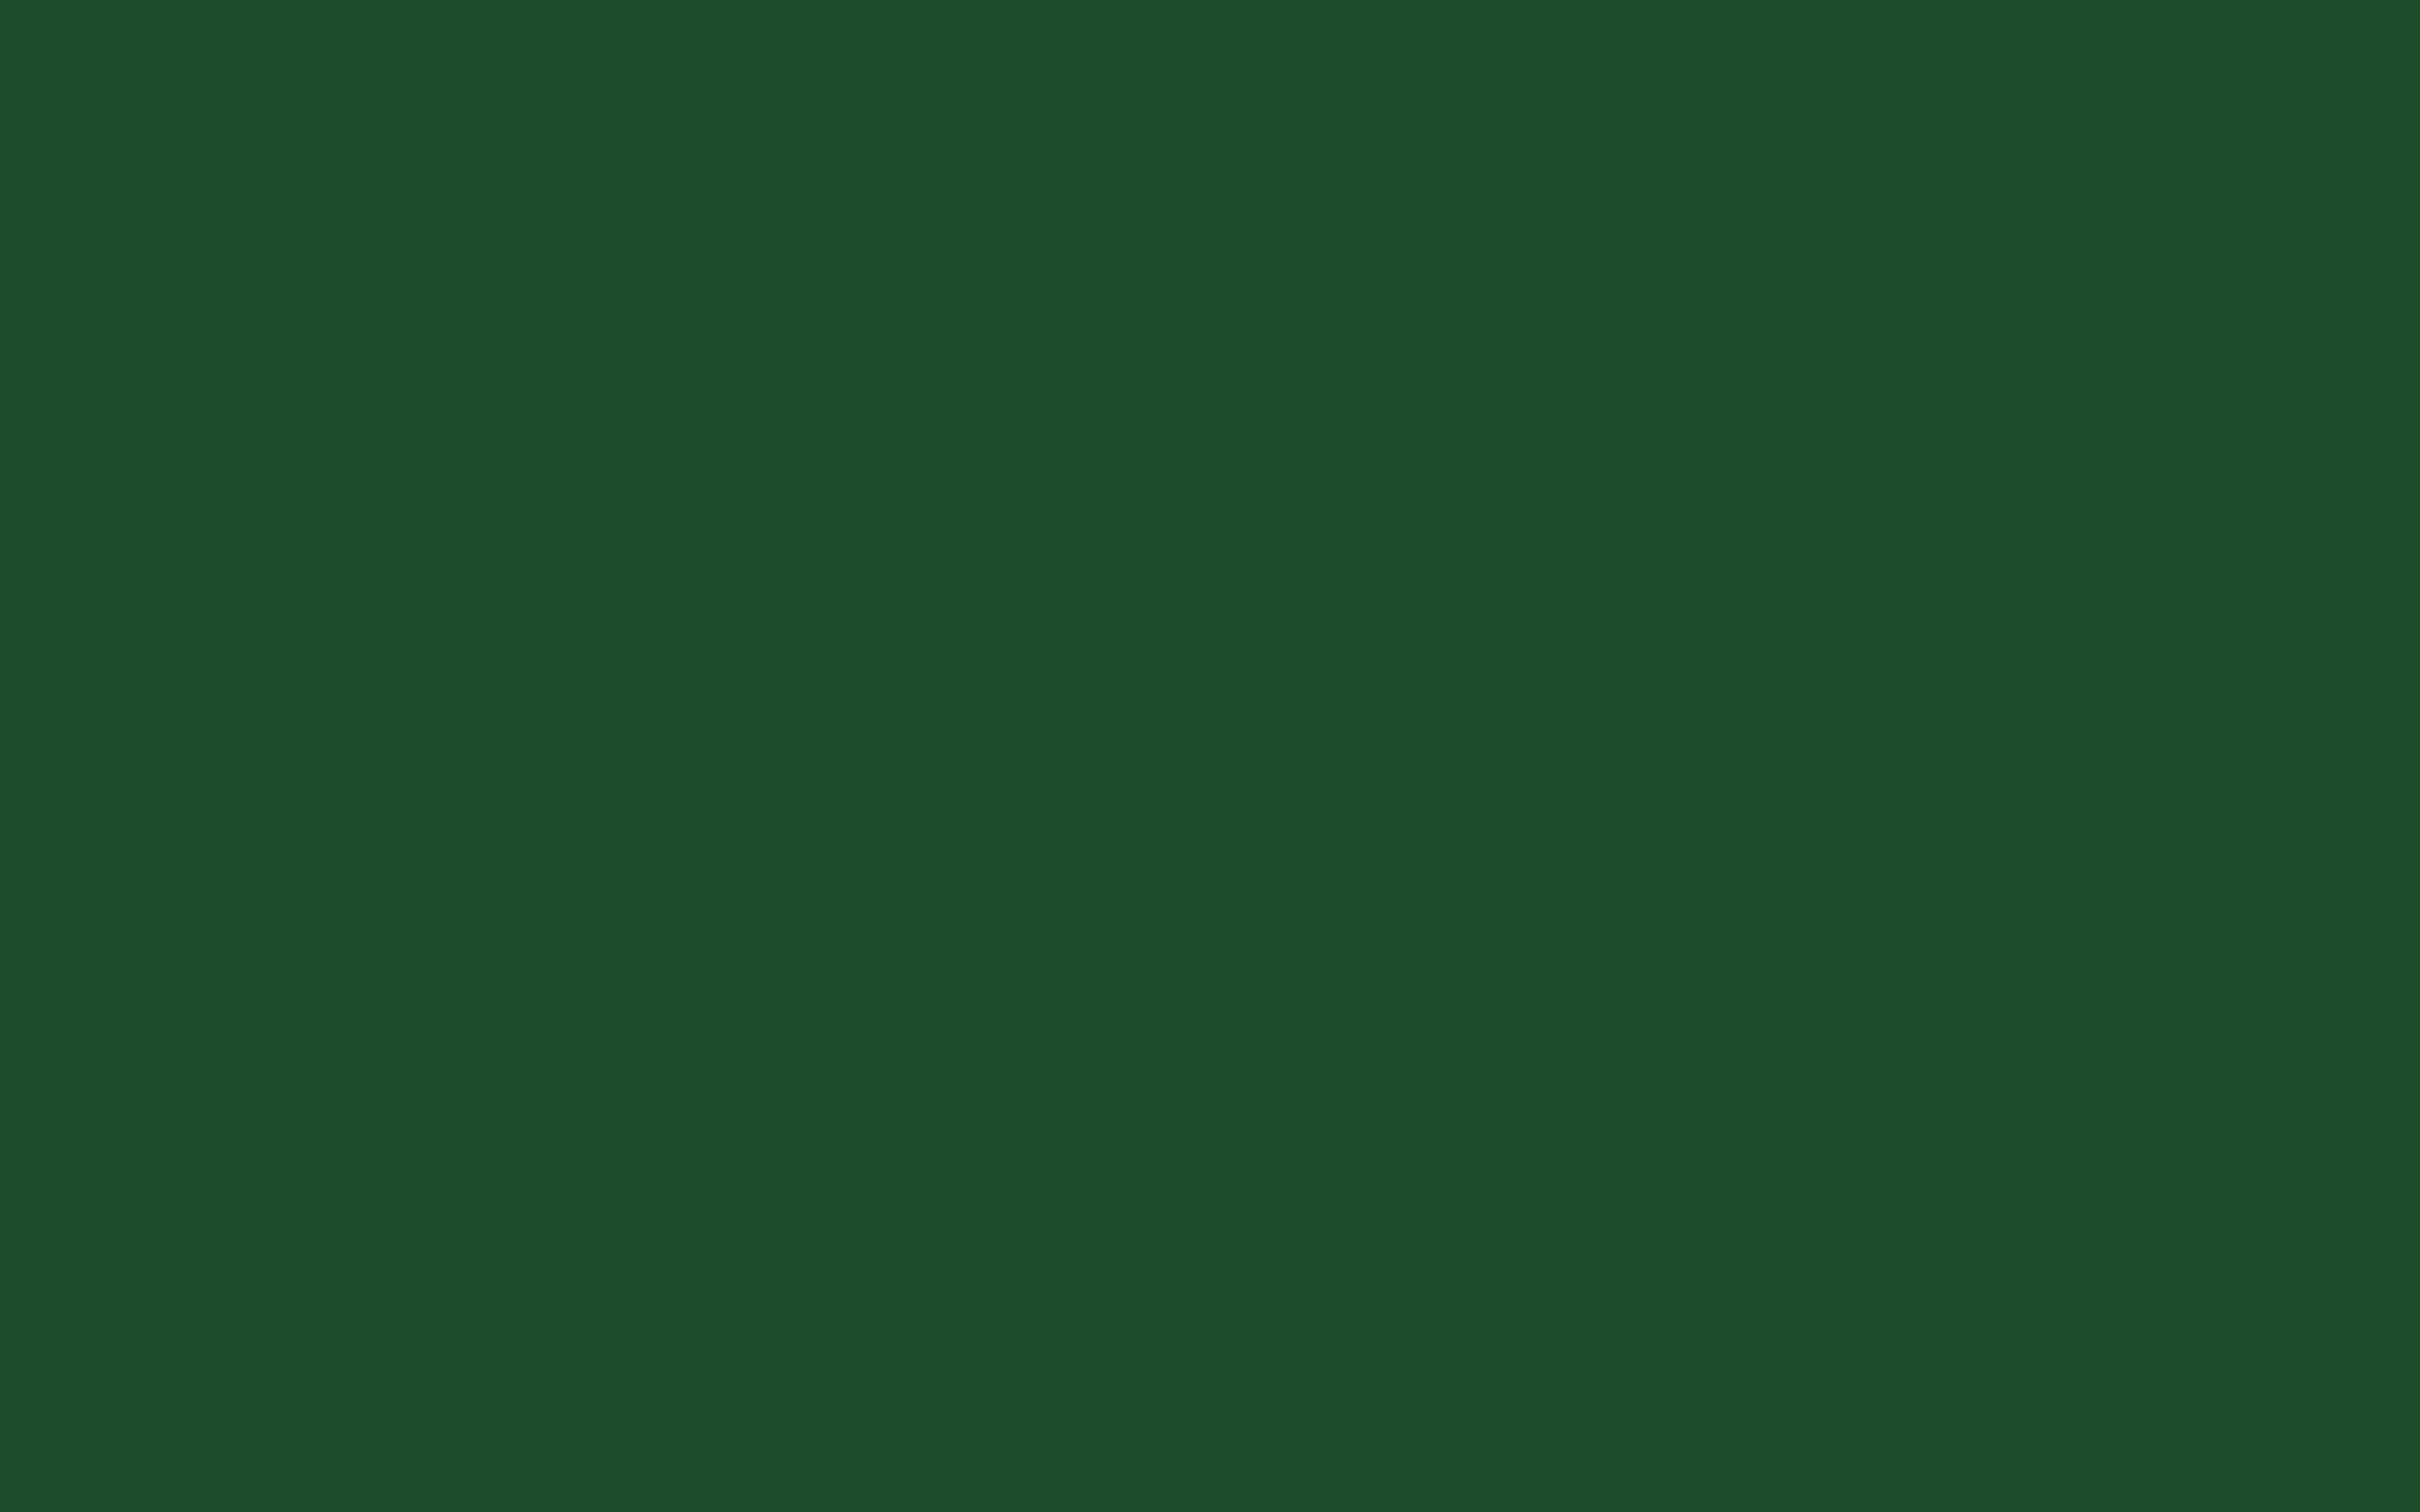 2560x1600 Cal Poly Green Solid Color Background